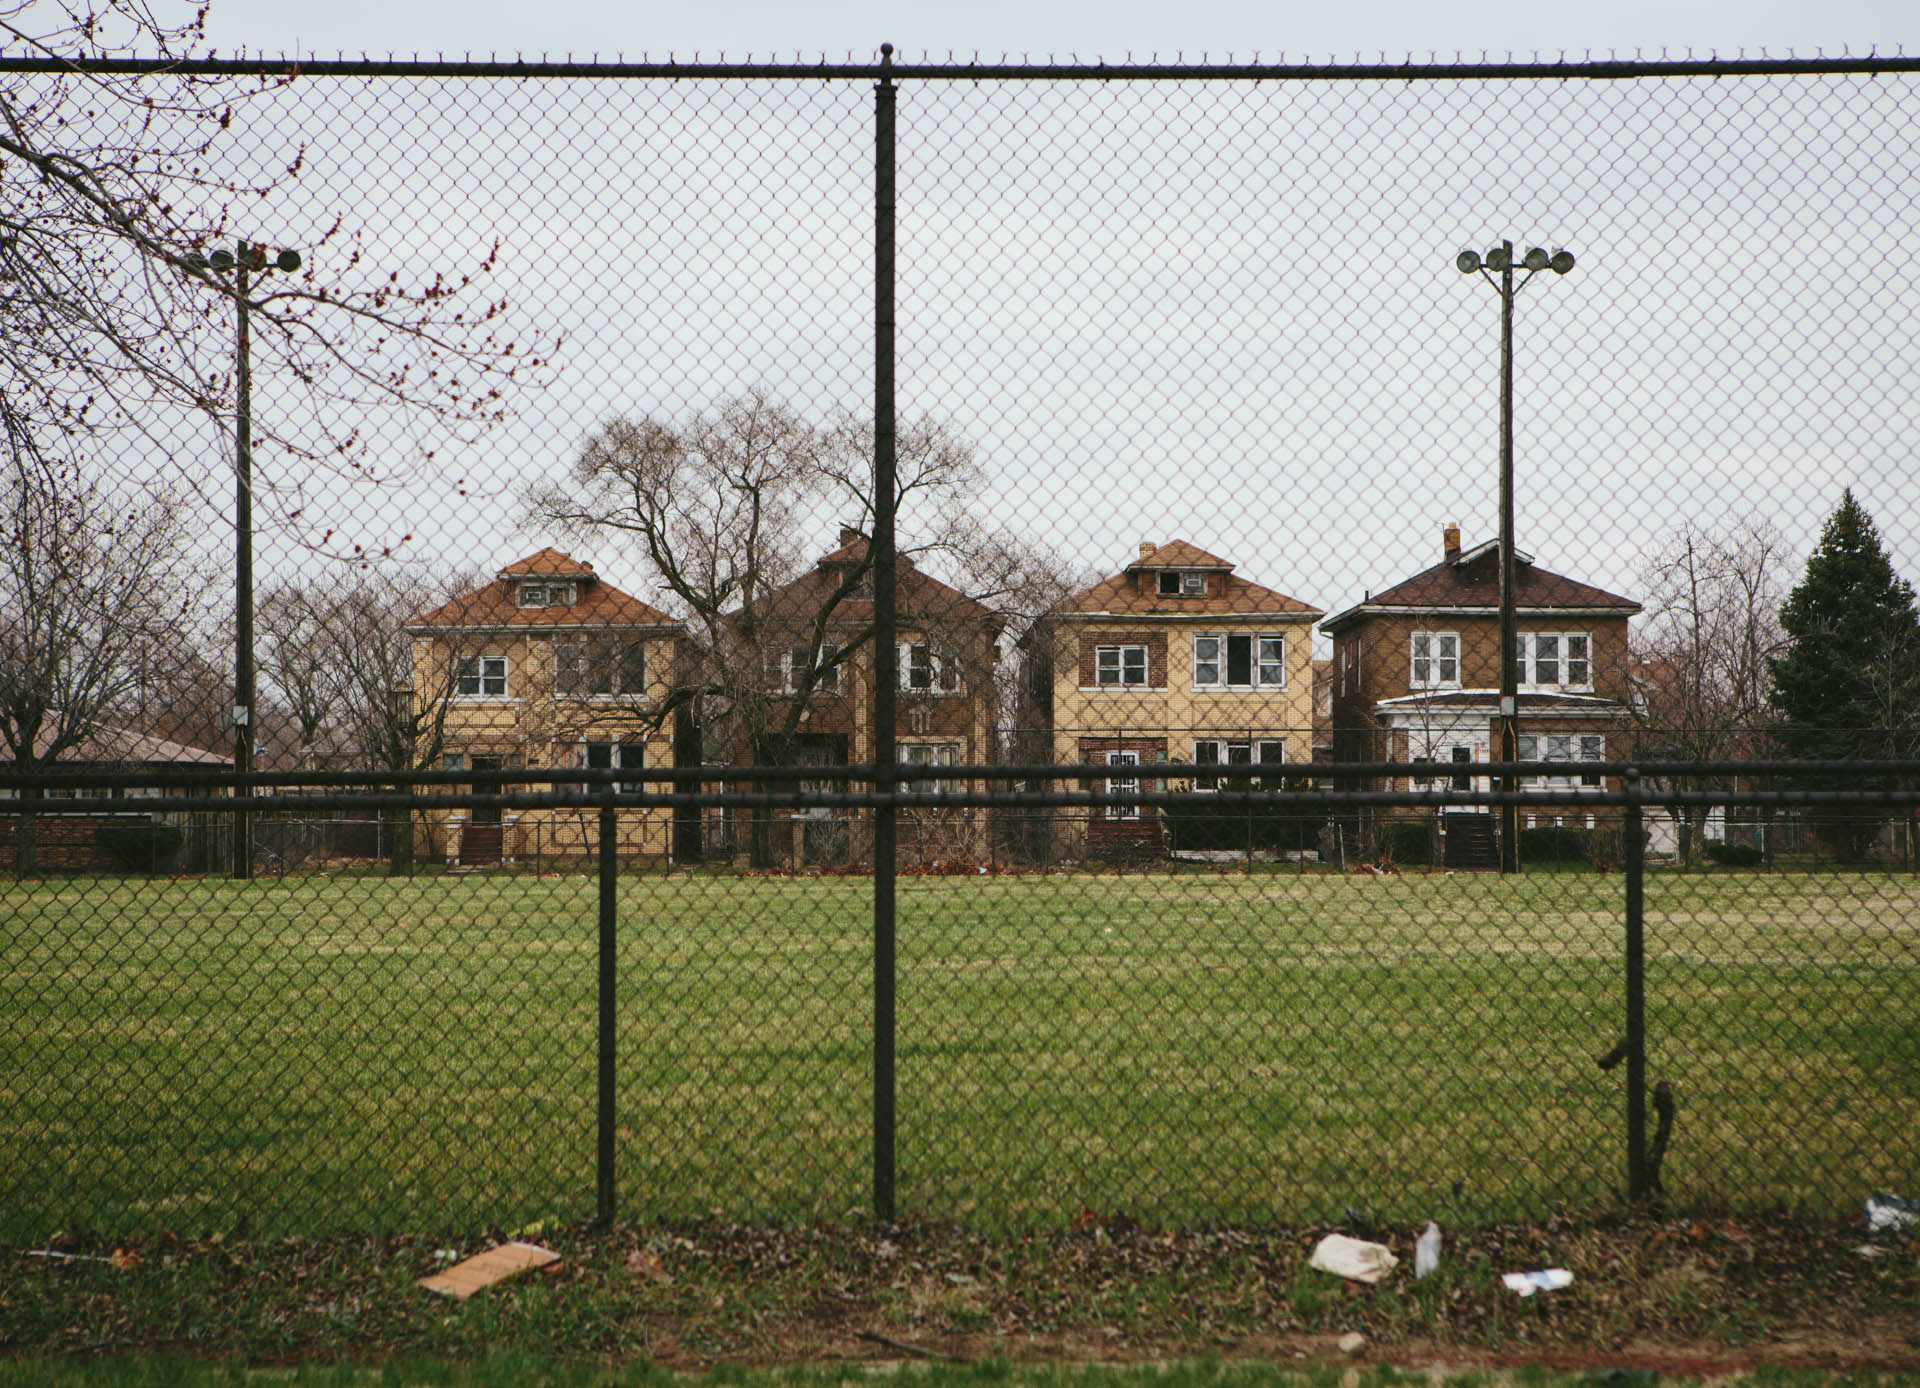 row-of-square-brick-homes-behind-chainlink-fence-gary-in-6058